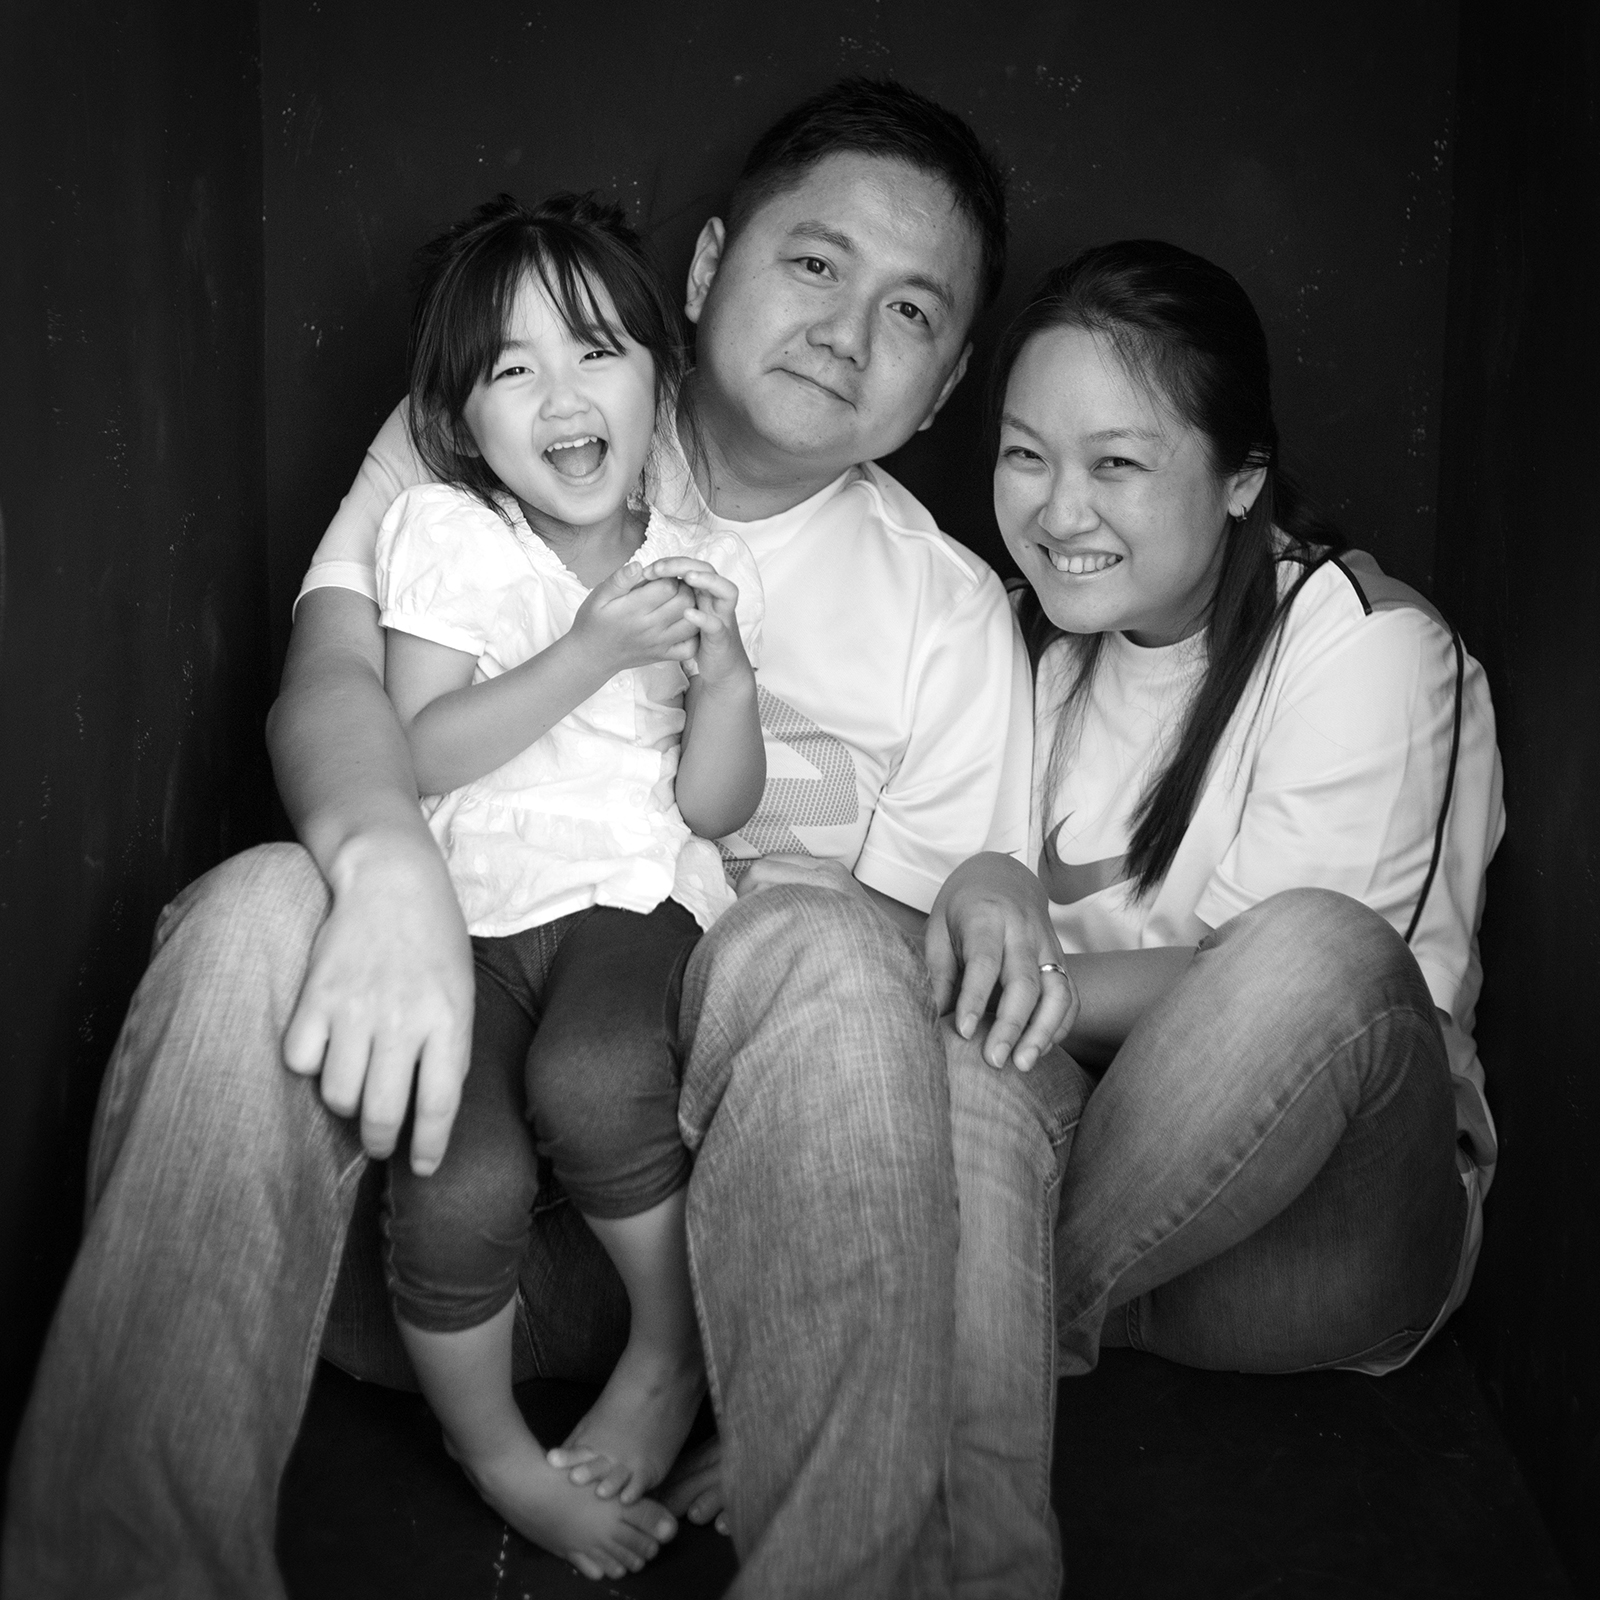 black-and-white-classic-family-photo-02